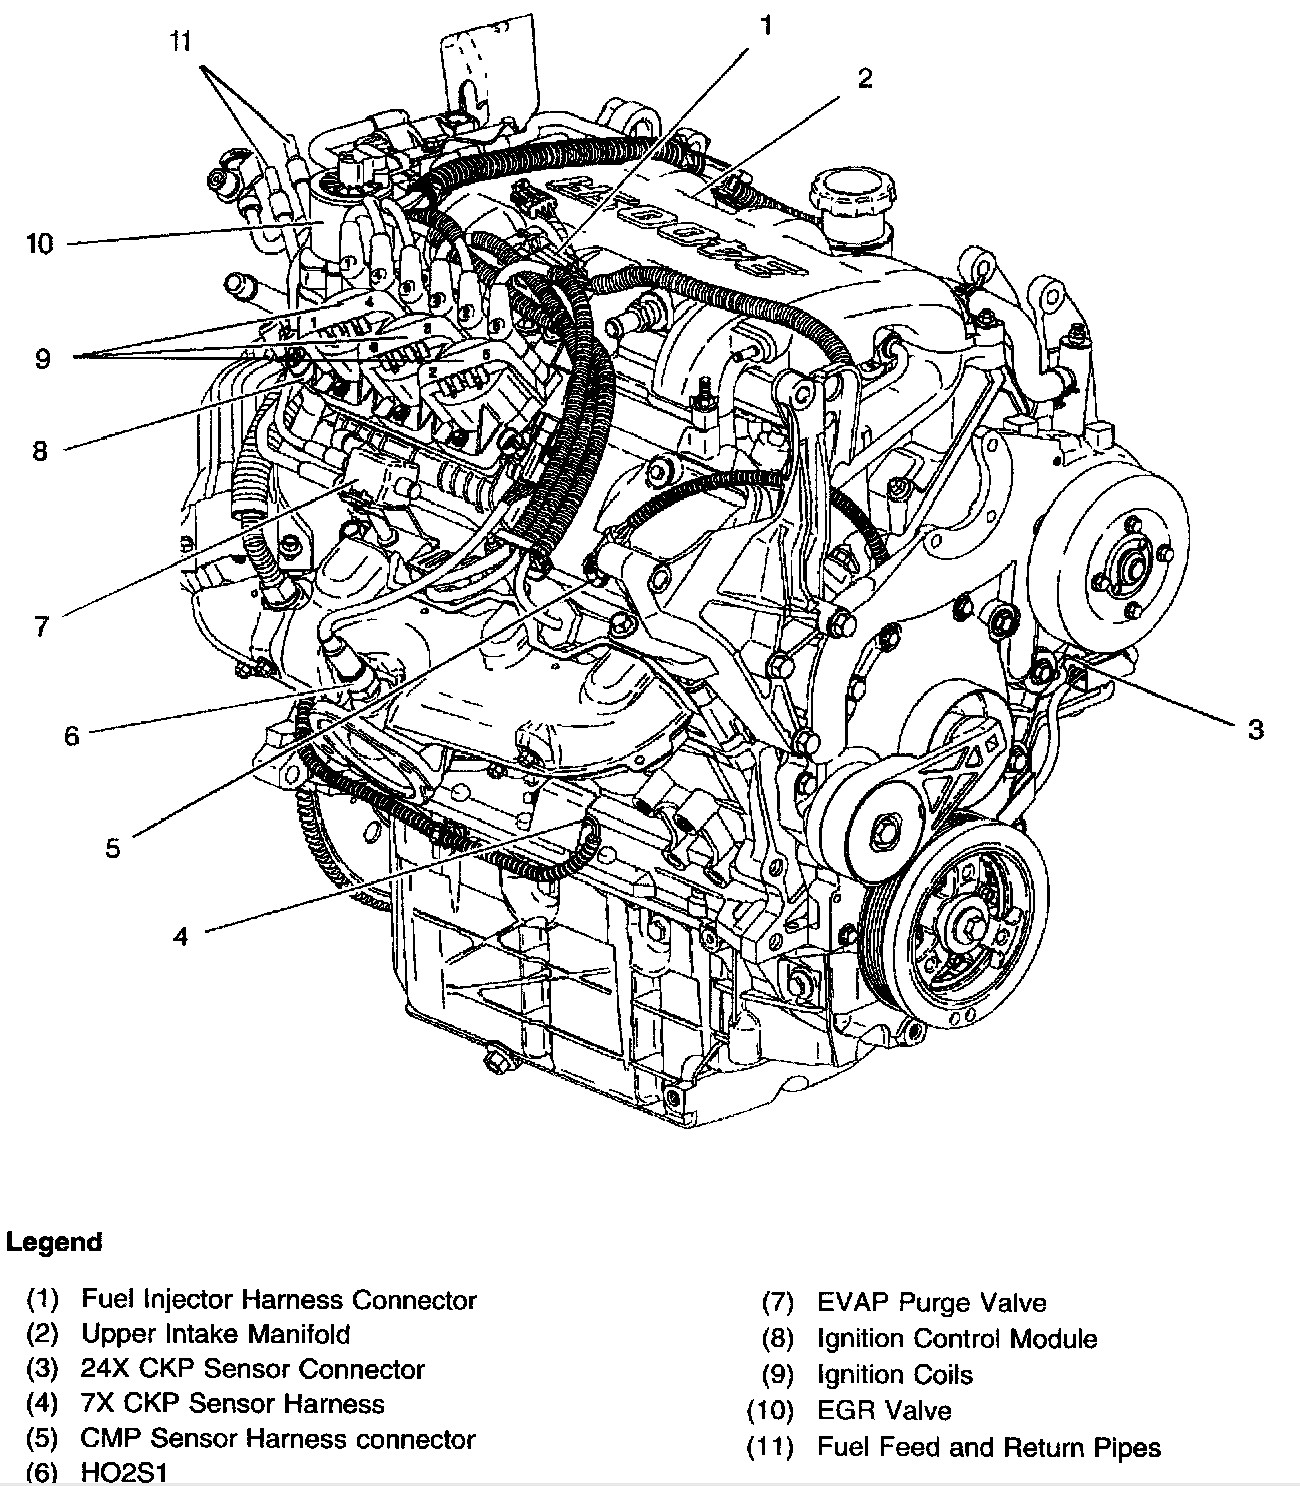 Gm 2 Engine Parts Diagram Wiring Library 1987 Monte Carlo Ignition Chevy 350 3800 Diagrams Instructions Of